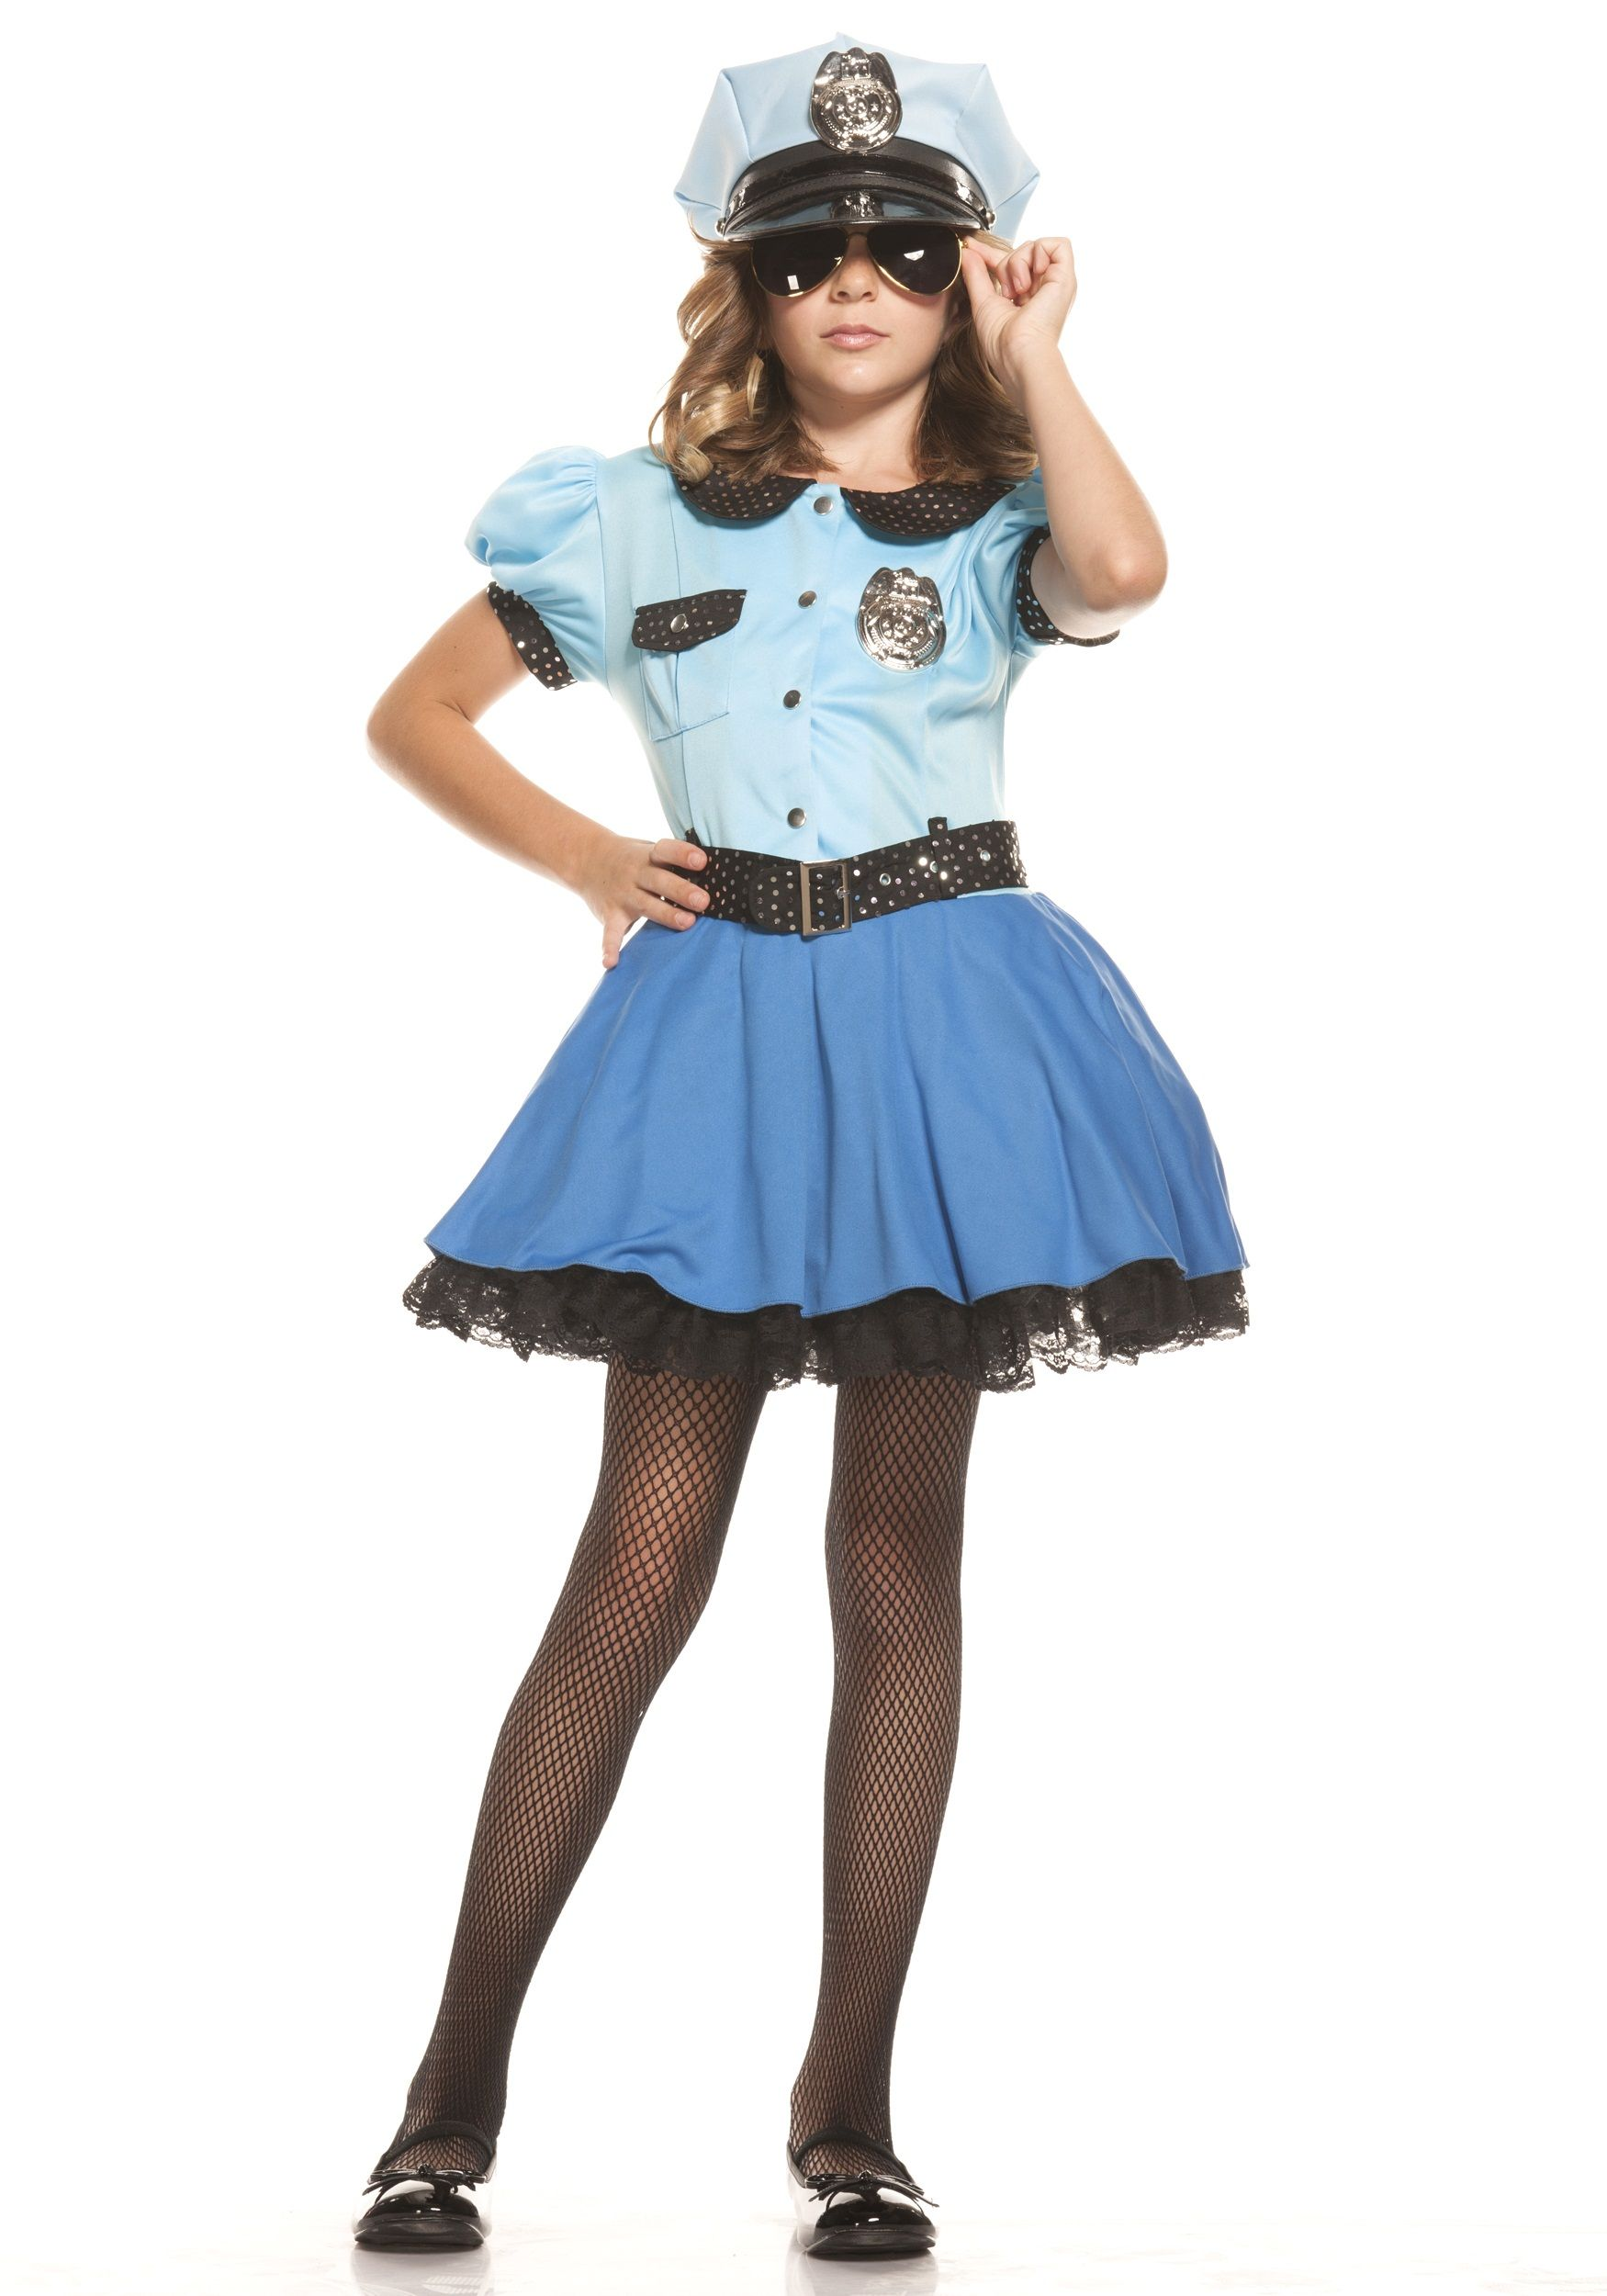 girls police uniform costume - Girls Cop Halloween Costume